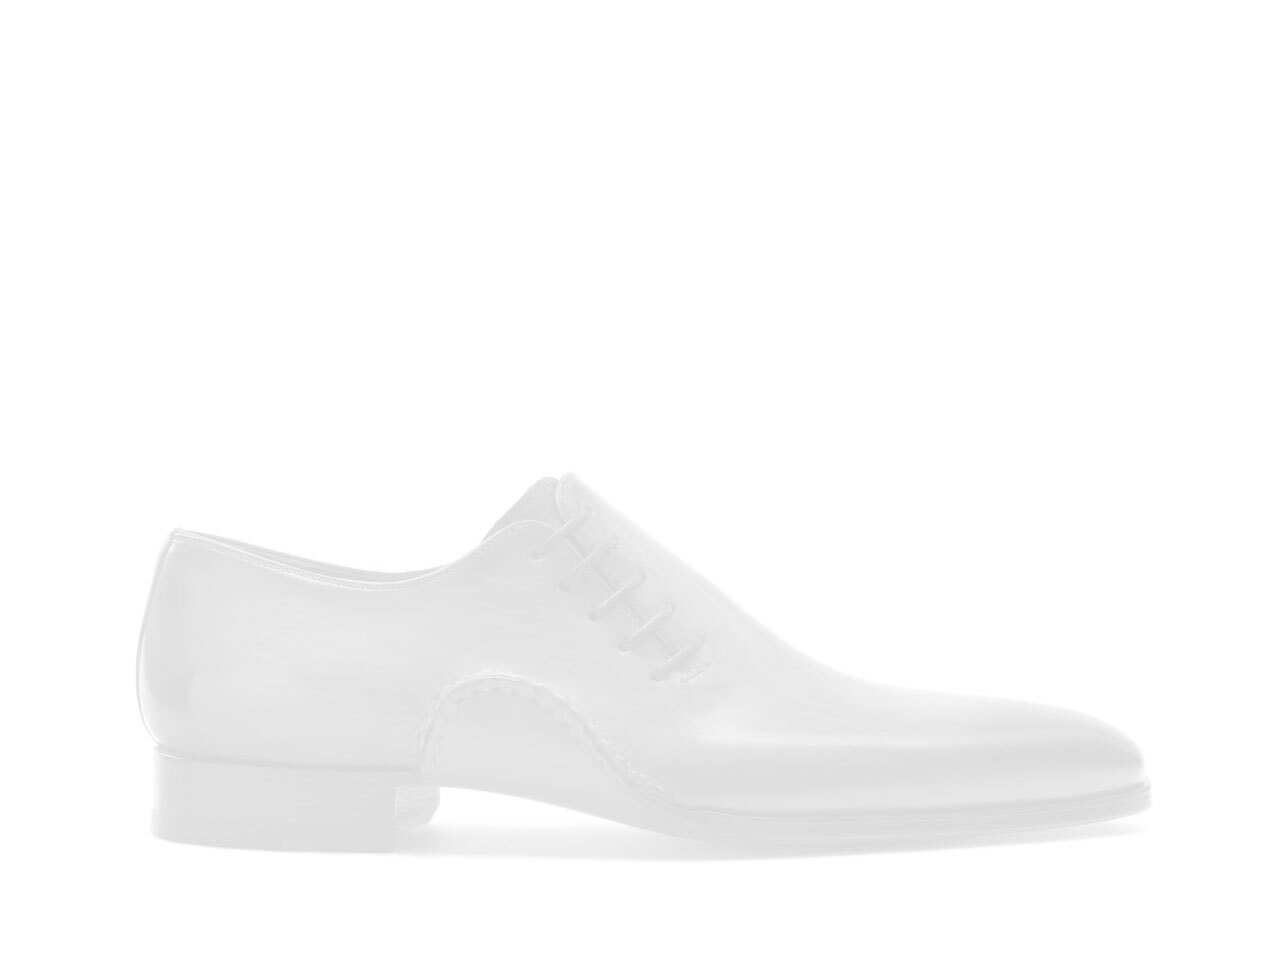 Side view of the Magnanni Basilio Lo Cuero Men's Sneakers